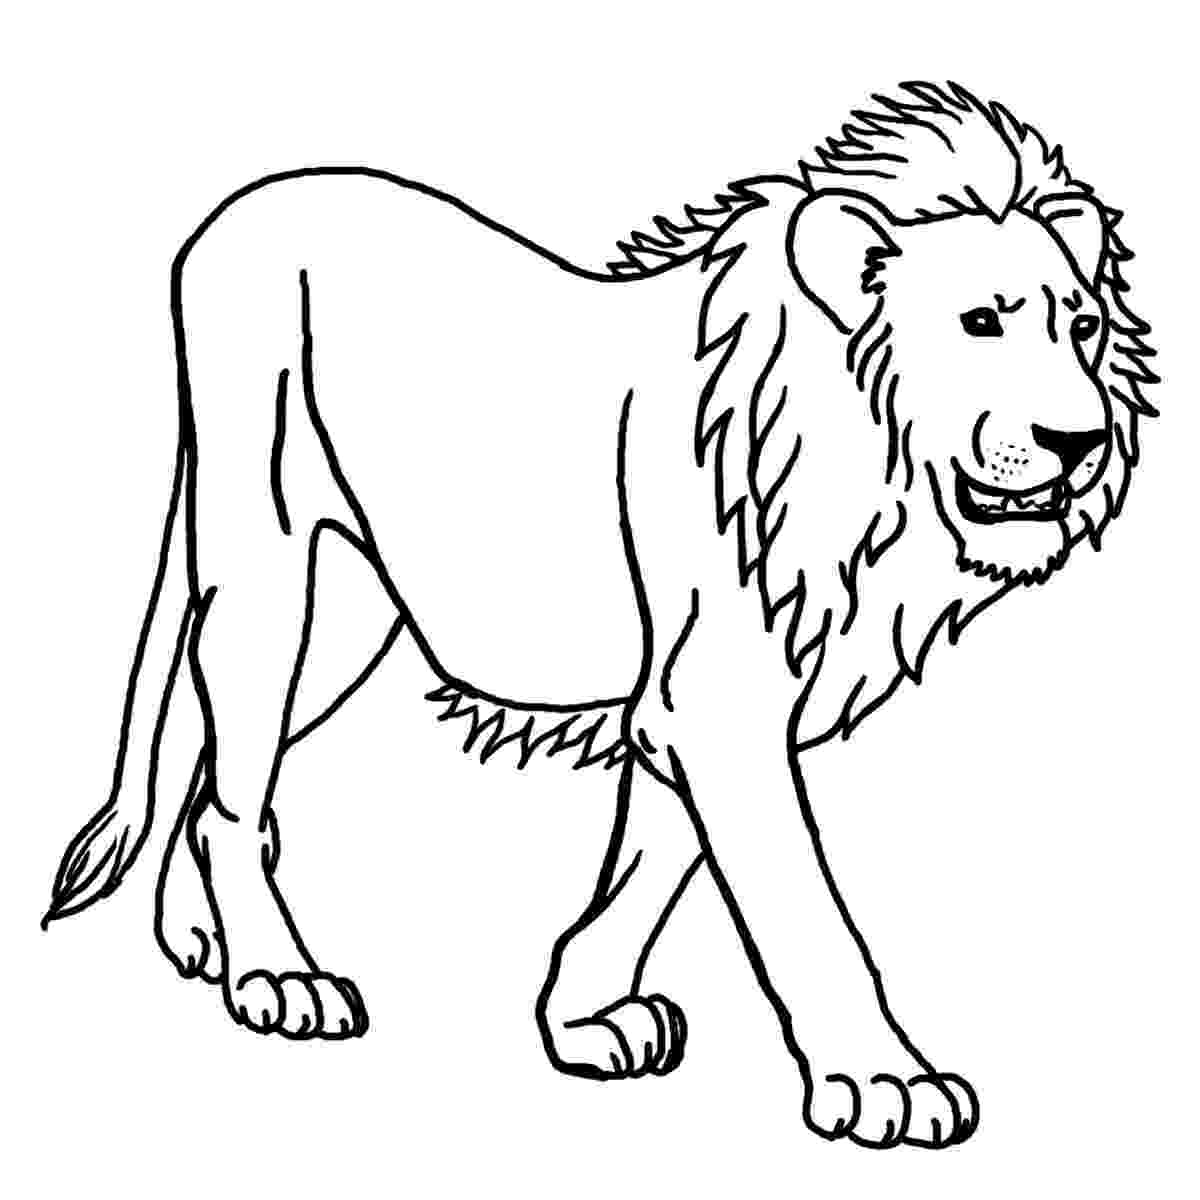 pictures of lions to color lion coloring pages to color of pictures lions